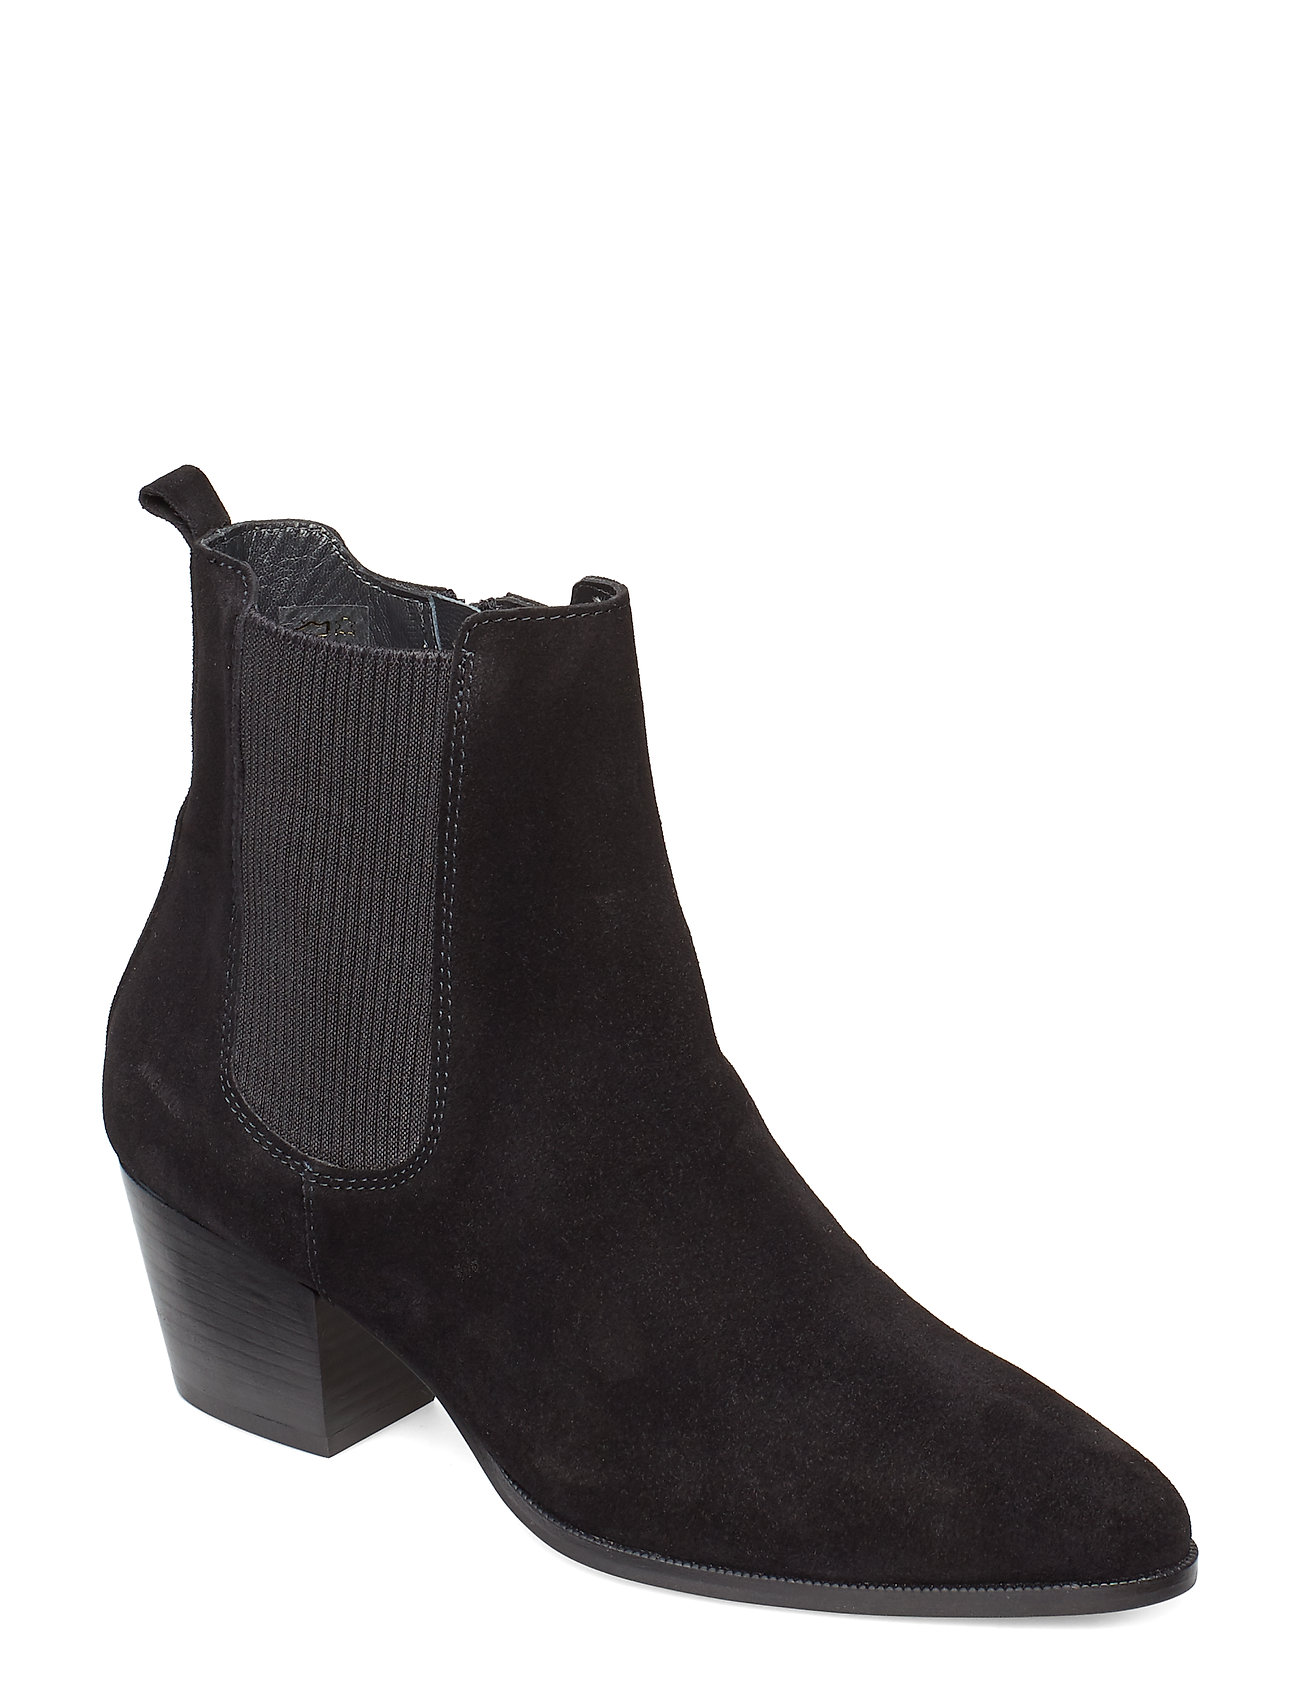 Image of Booties - Block Heel - With Elas Shoes Boots Ankle Boots Ankle Boot - Heel Sort ANGULUS (3490301821)